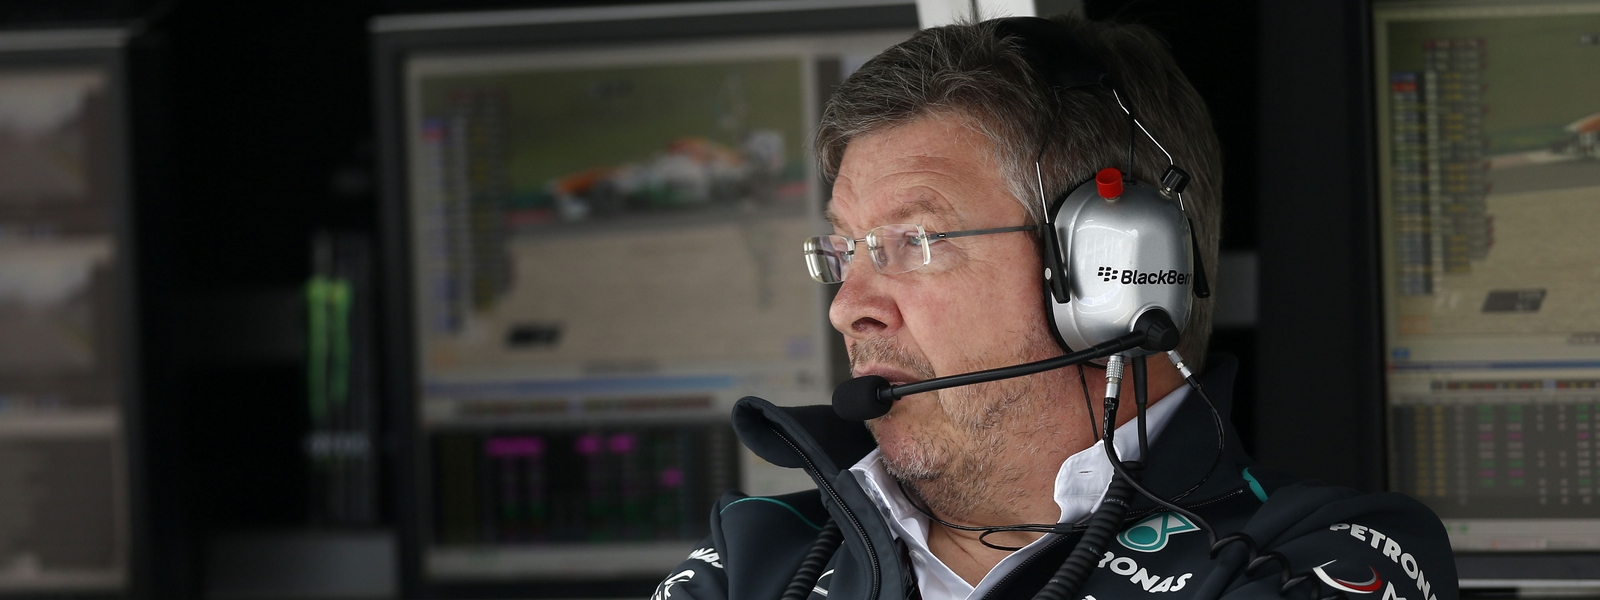 Motorsports: FIA Formula One World Championship 2013, Grand Prix of Germany,  Ross Brawn (GBR, Mercedes AMG Petronas F1 Team),  *** Local Caption *** +++ www.hoch-zwei.net +++ copyright: HOCH ZWEI +++